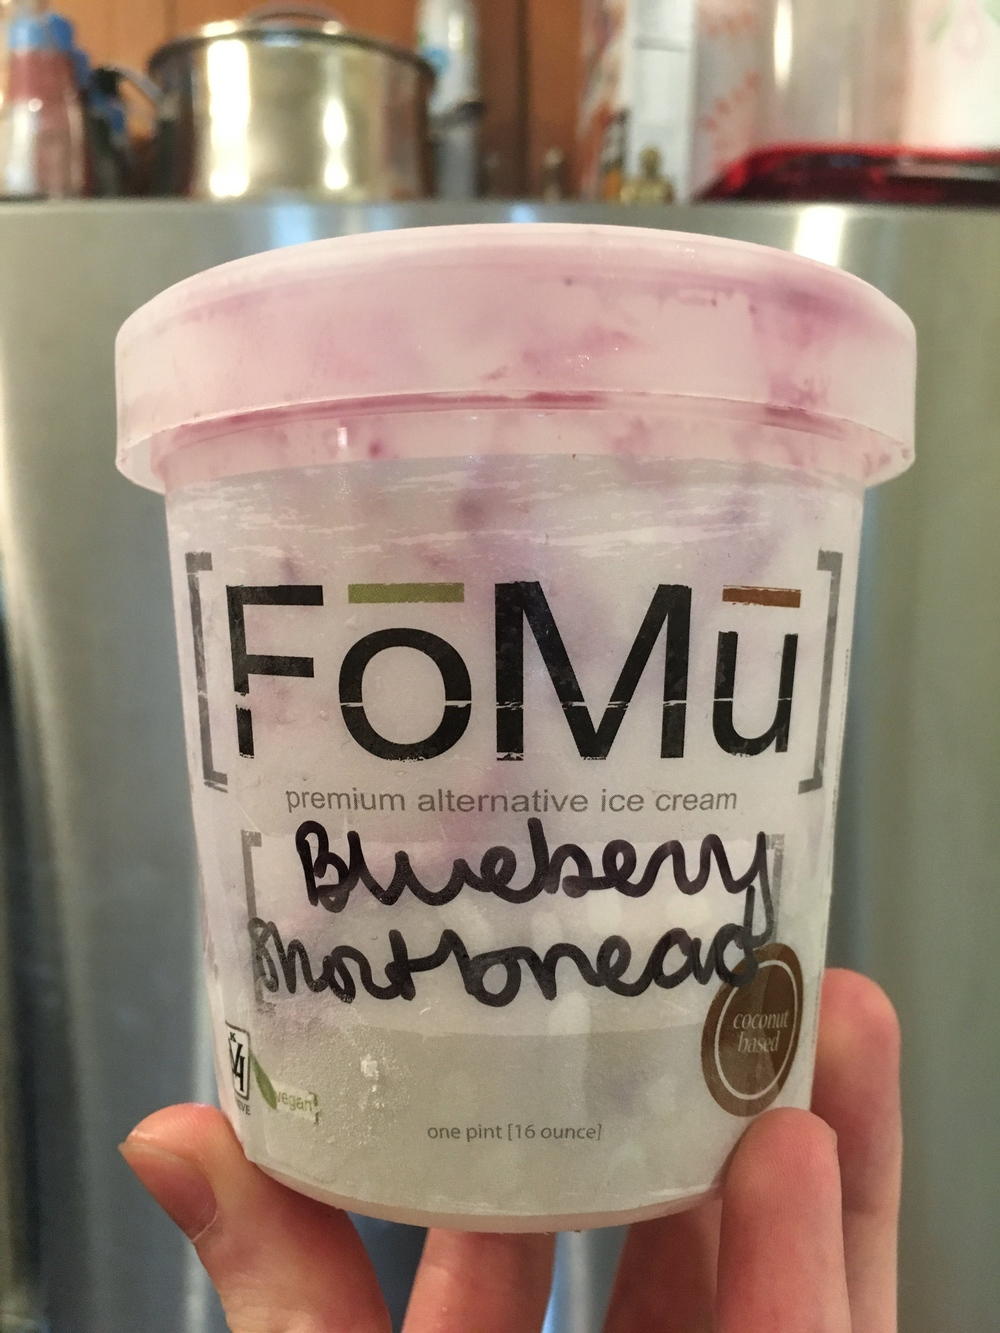 I don't like  FoMu   because  it's vegan. I like it in spite of that.